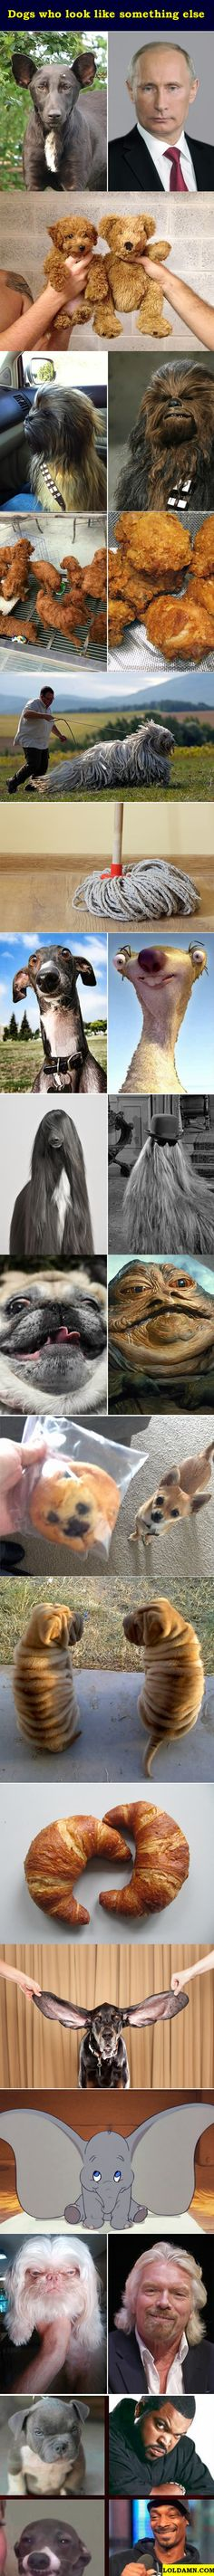 Dogs Who Look Like Something Else.